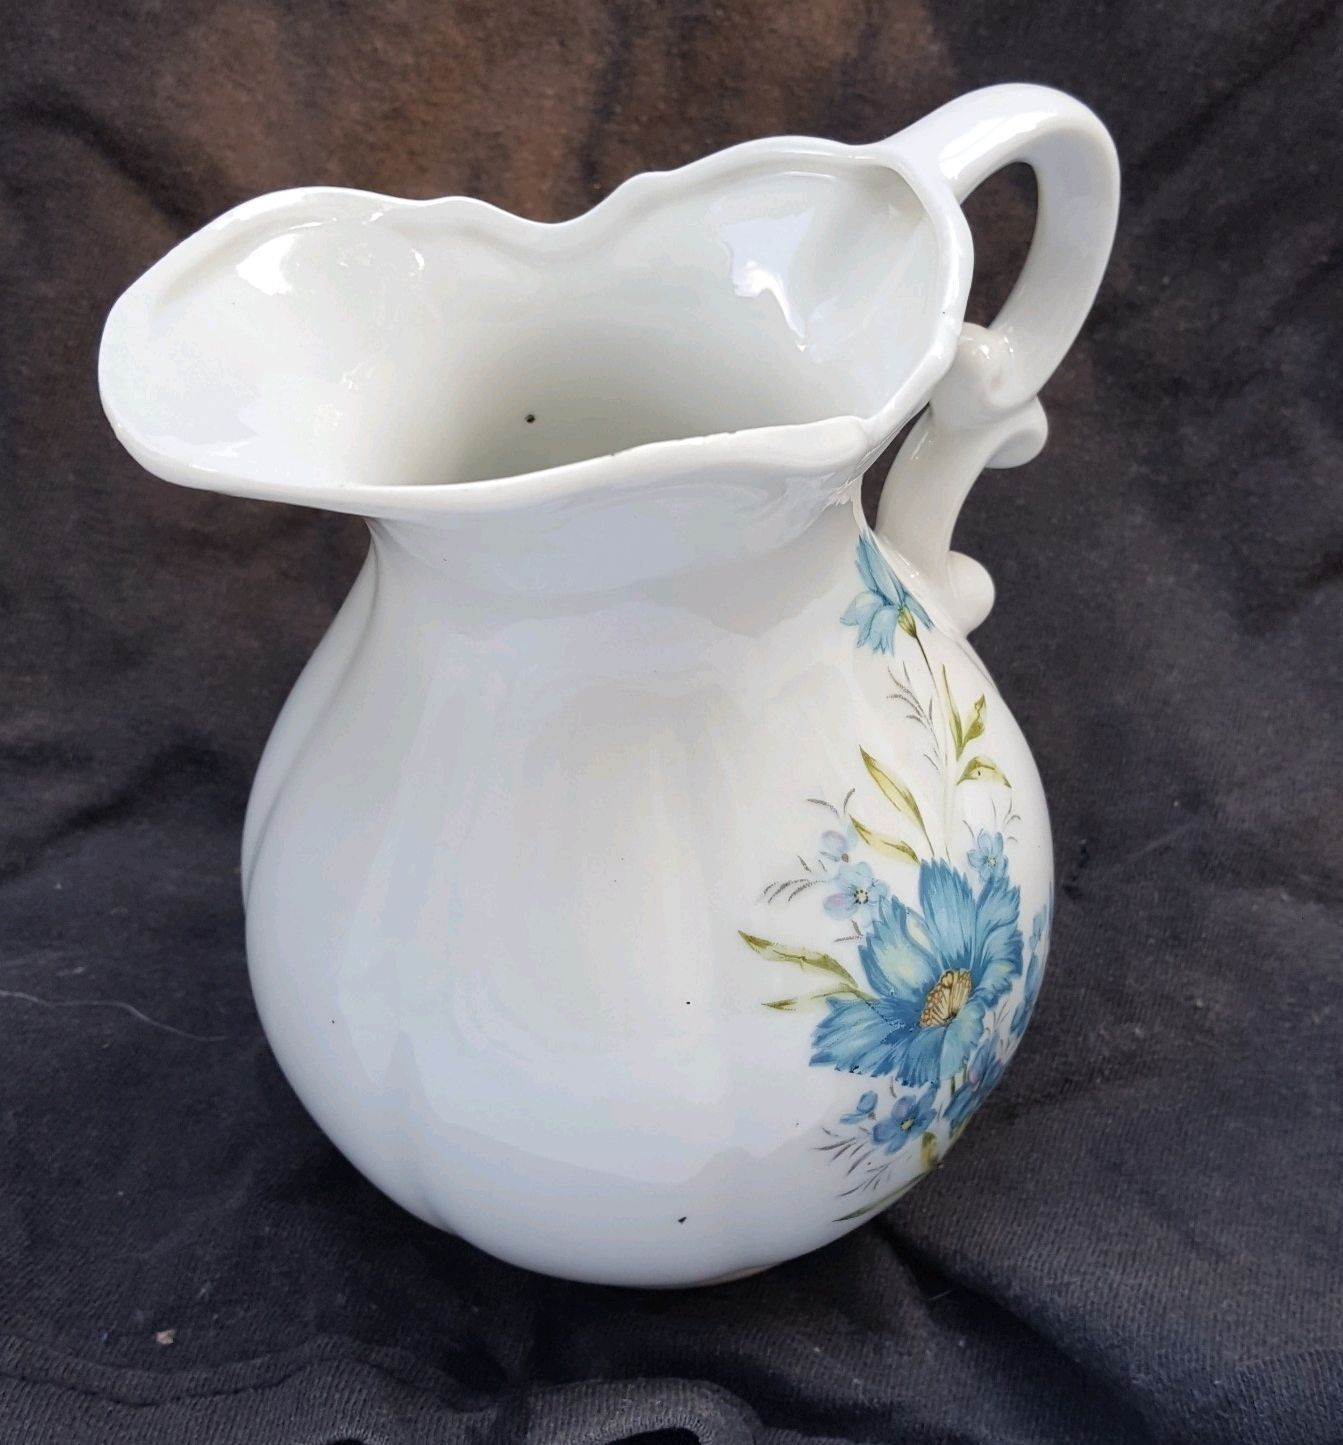 Vintage Inarco Japan White Ceramic Pitcher With Blue Flowers E-4542